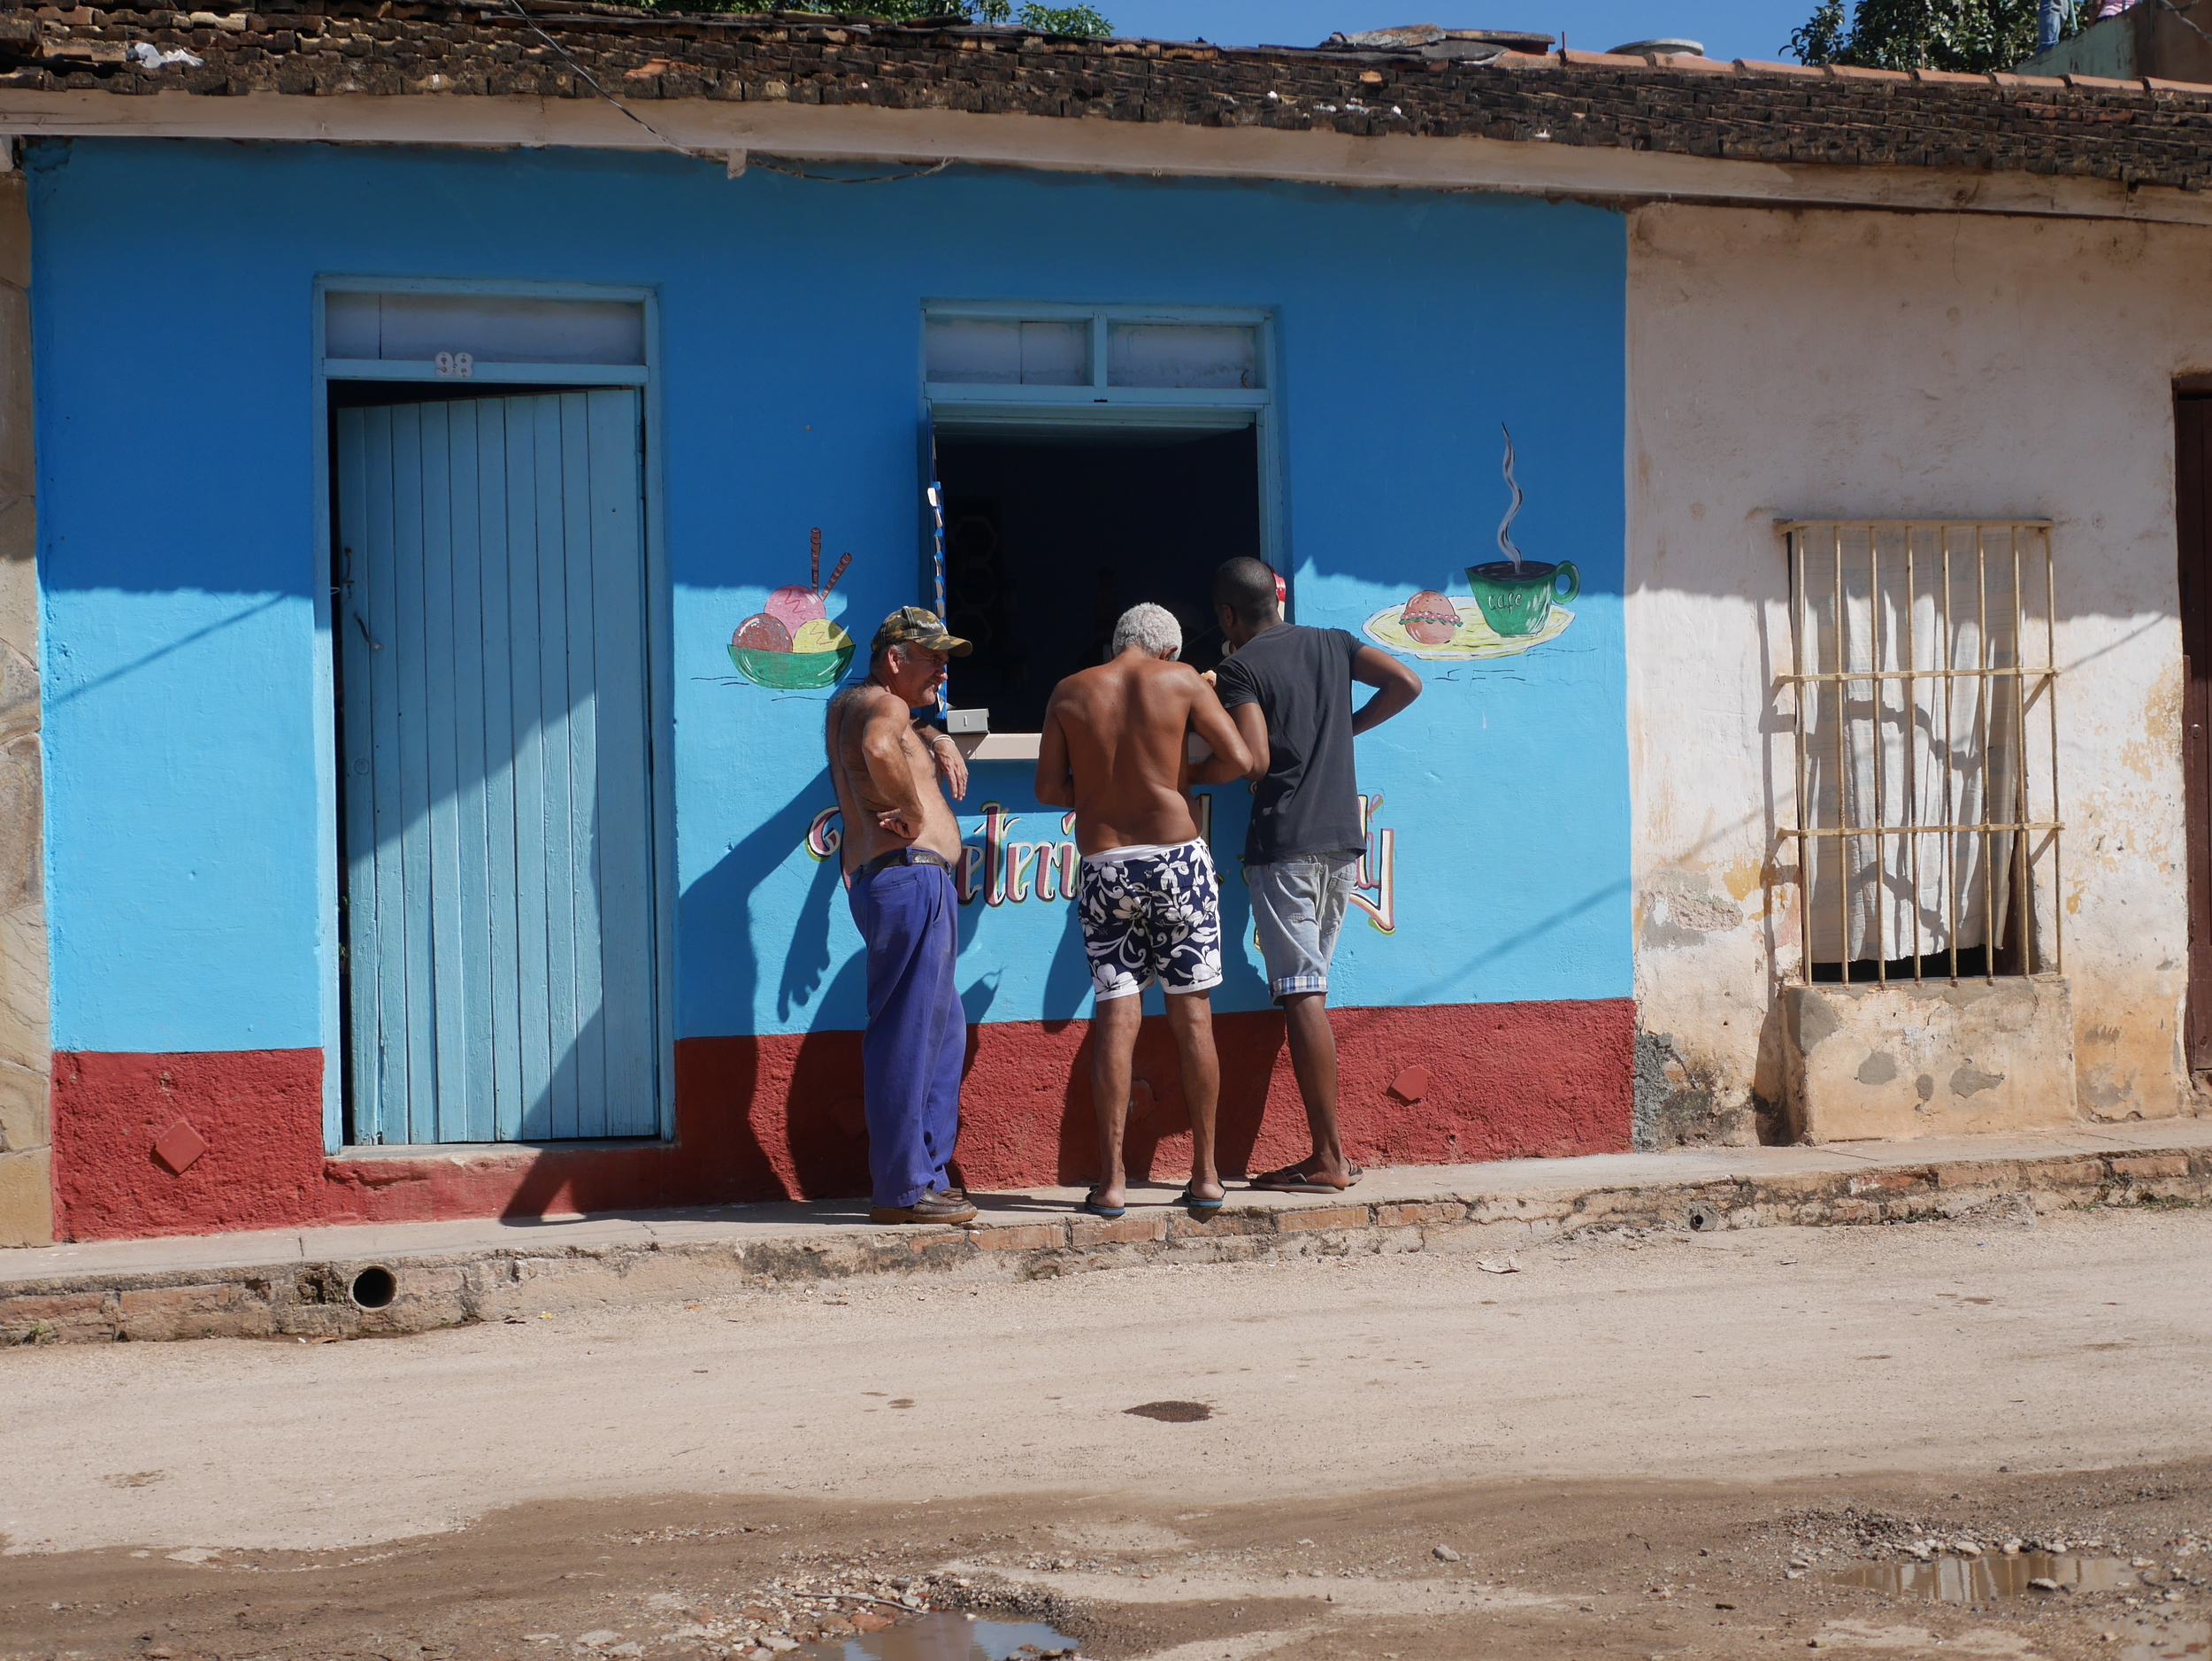 This is how you stop for a coffee in Cuba. Drink it at the window, give it back and go about your day. No waste!